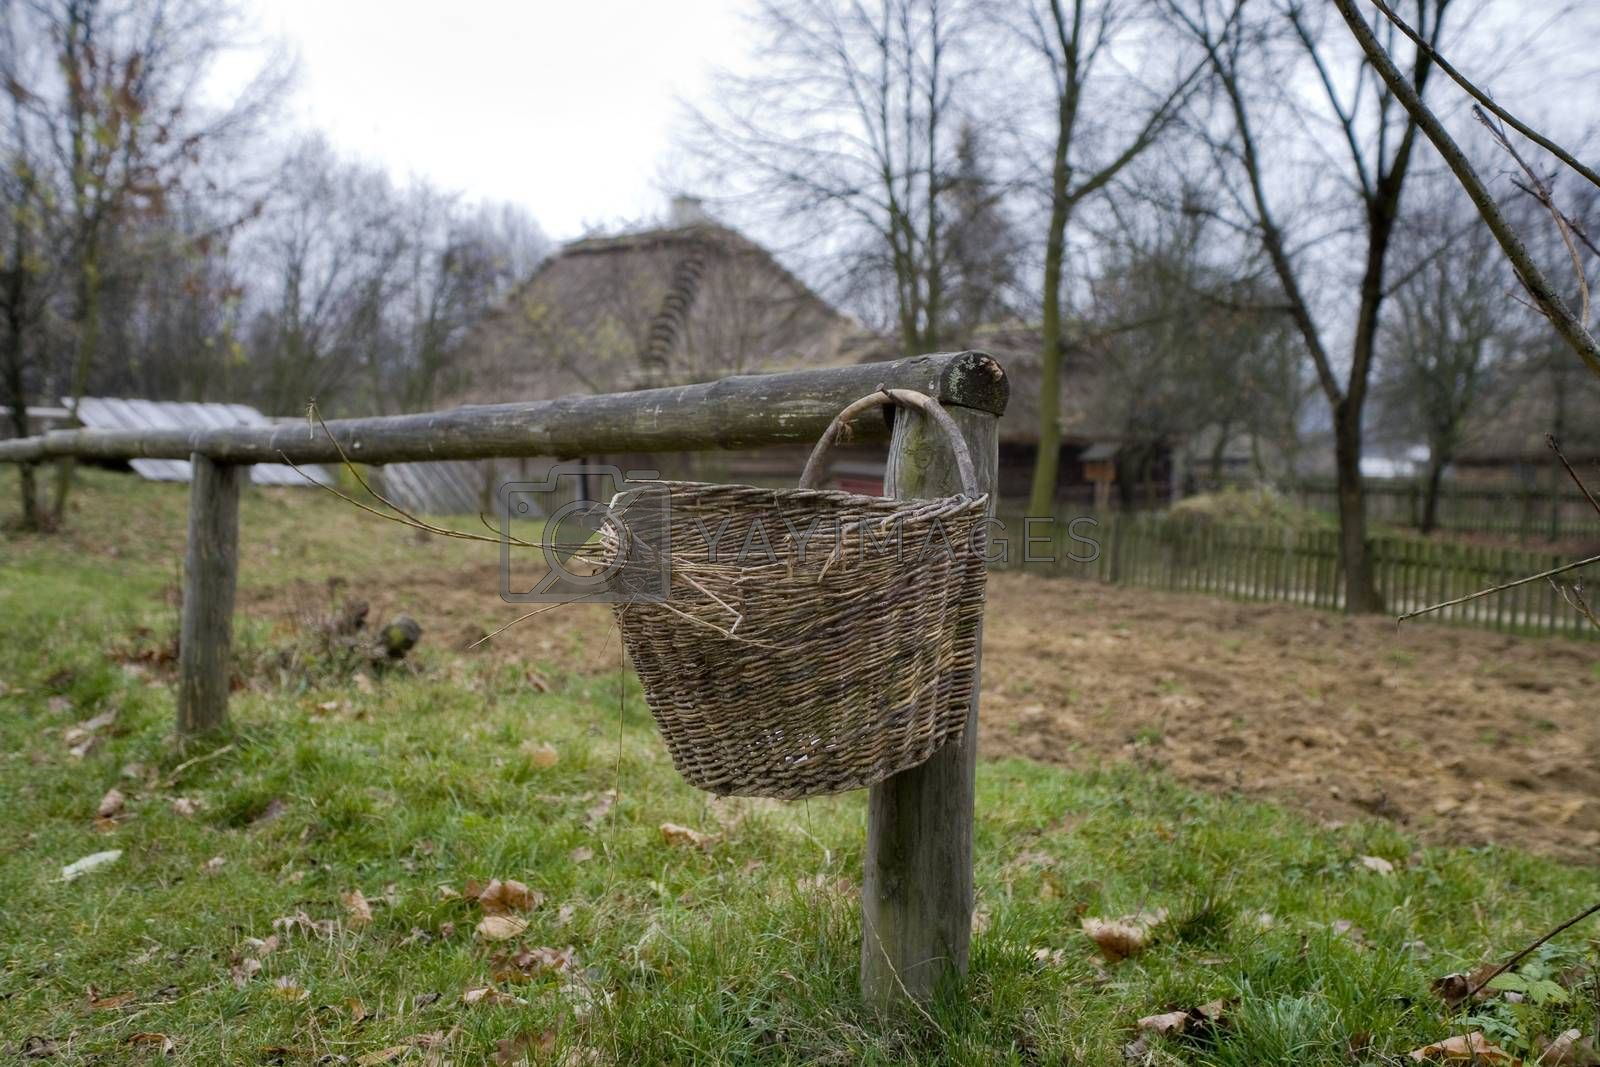 Royalty free image of  basket hanging on a wooden fence in a village in Podlasie, Pola by Lukrecja